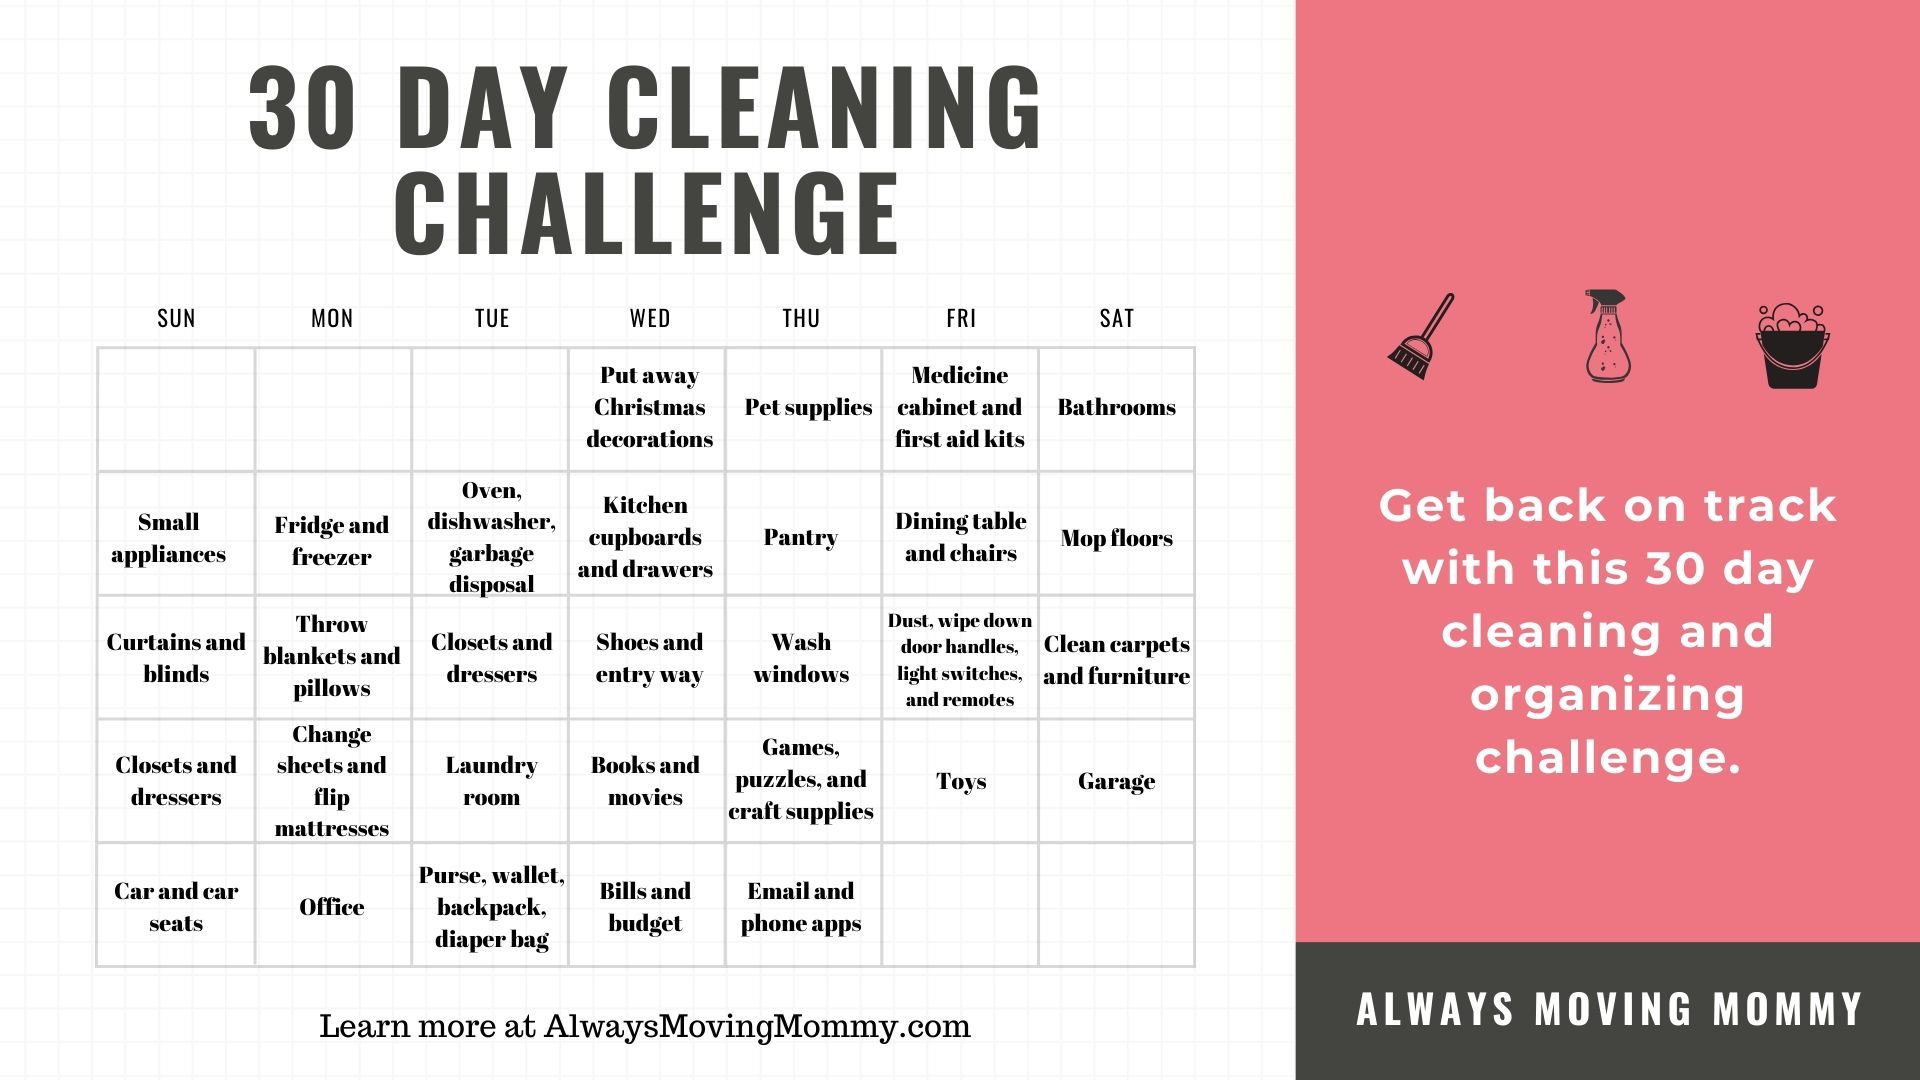 30 Day Cleaning Challenge | AlwaysMovingMommy.com